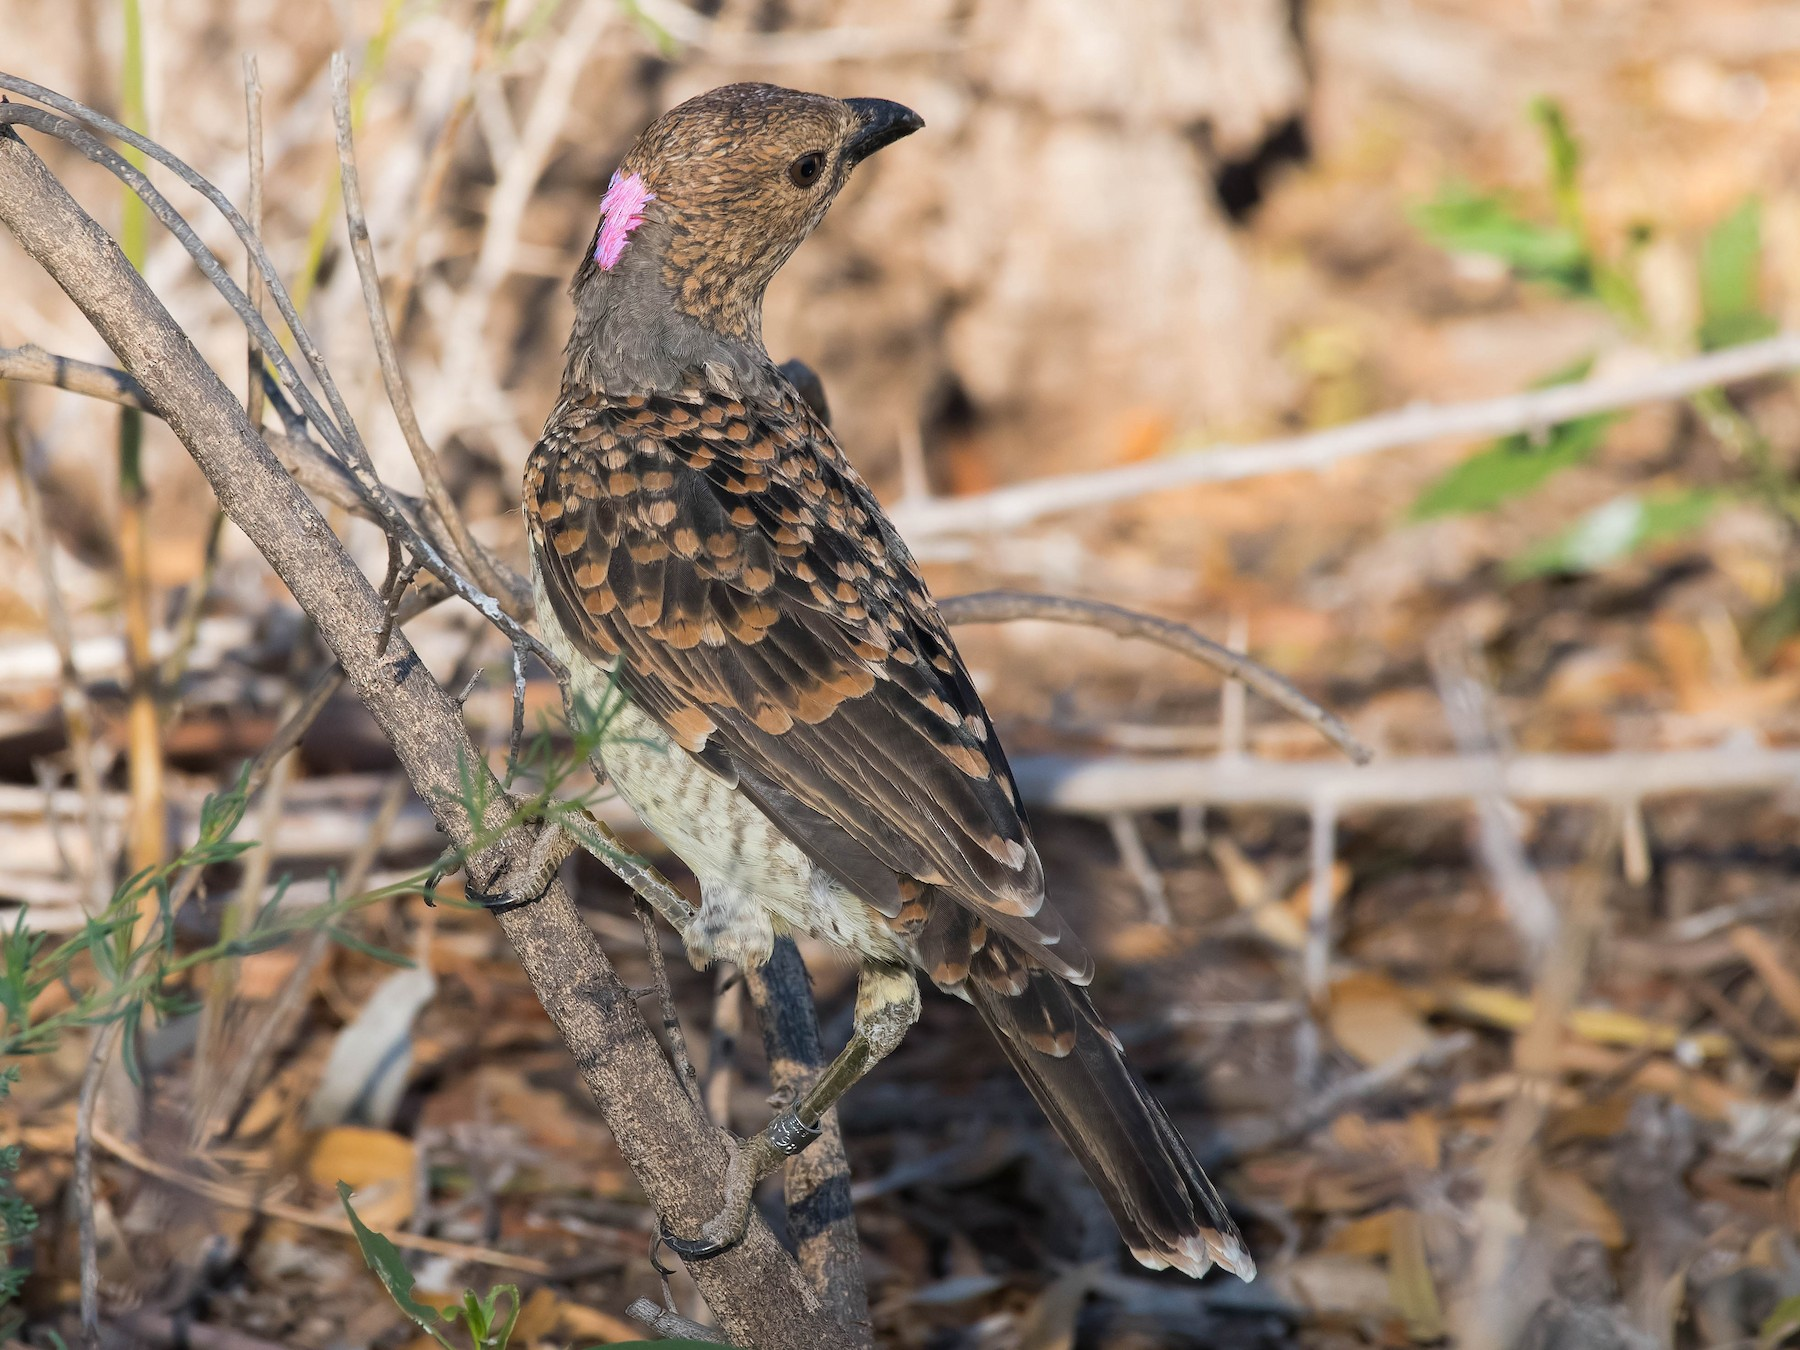 Spotted Bowerbird - Terence Alexander